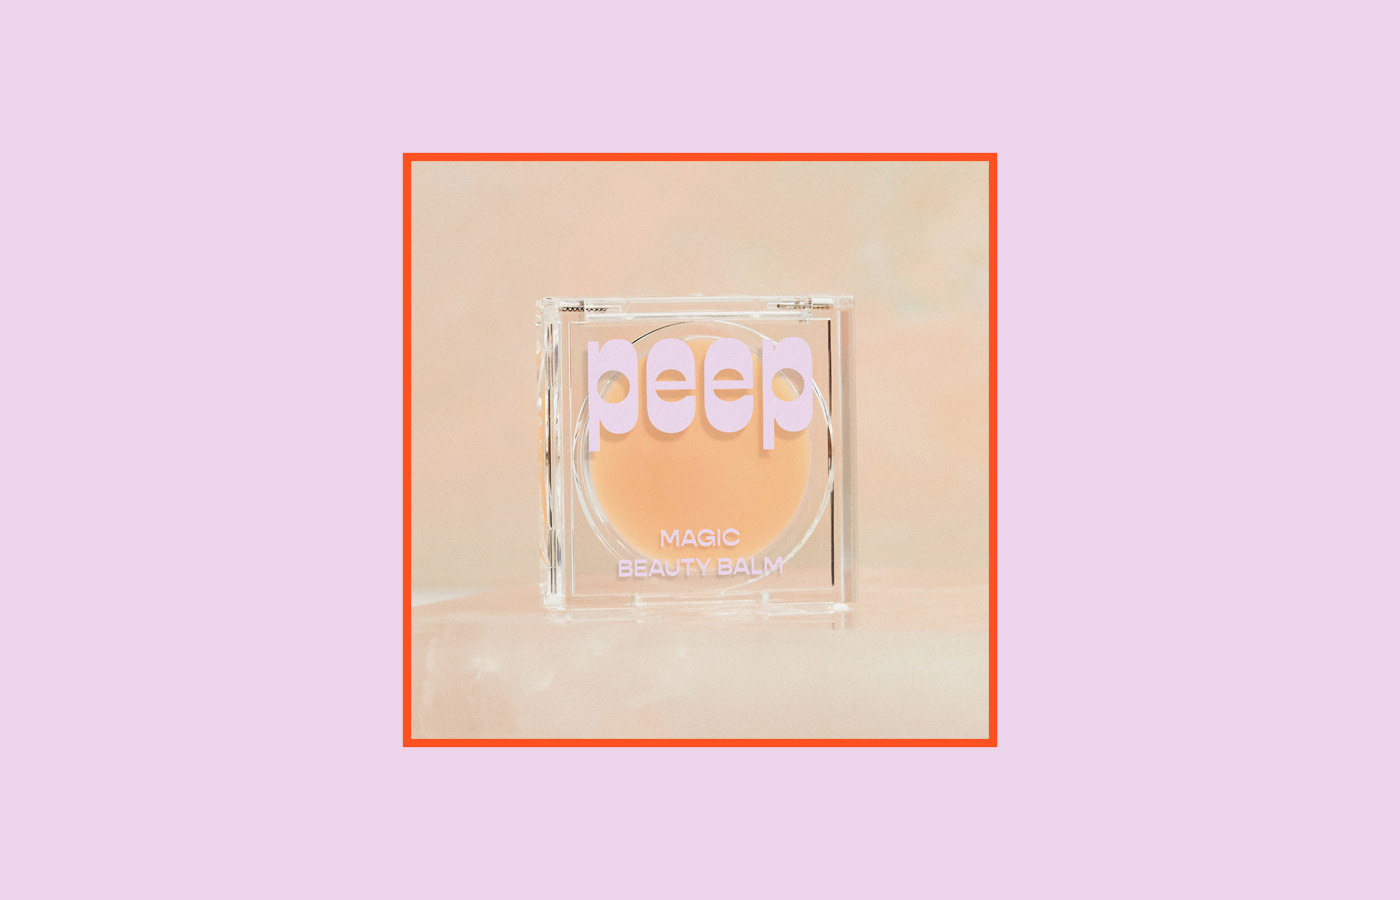 Peep Package Concept Design